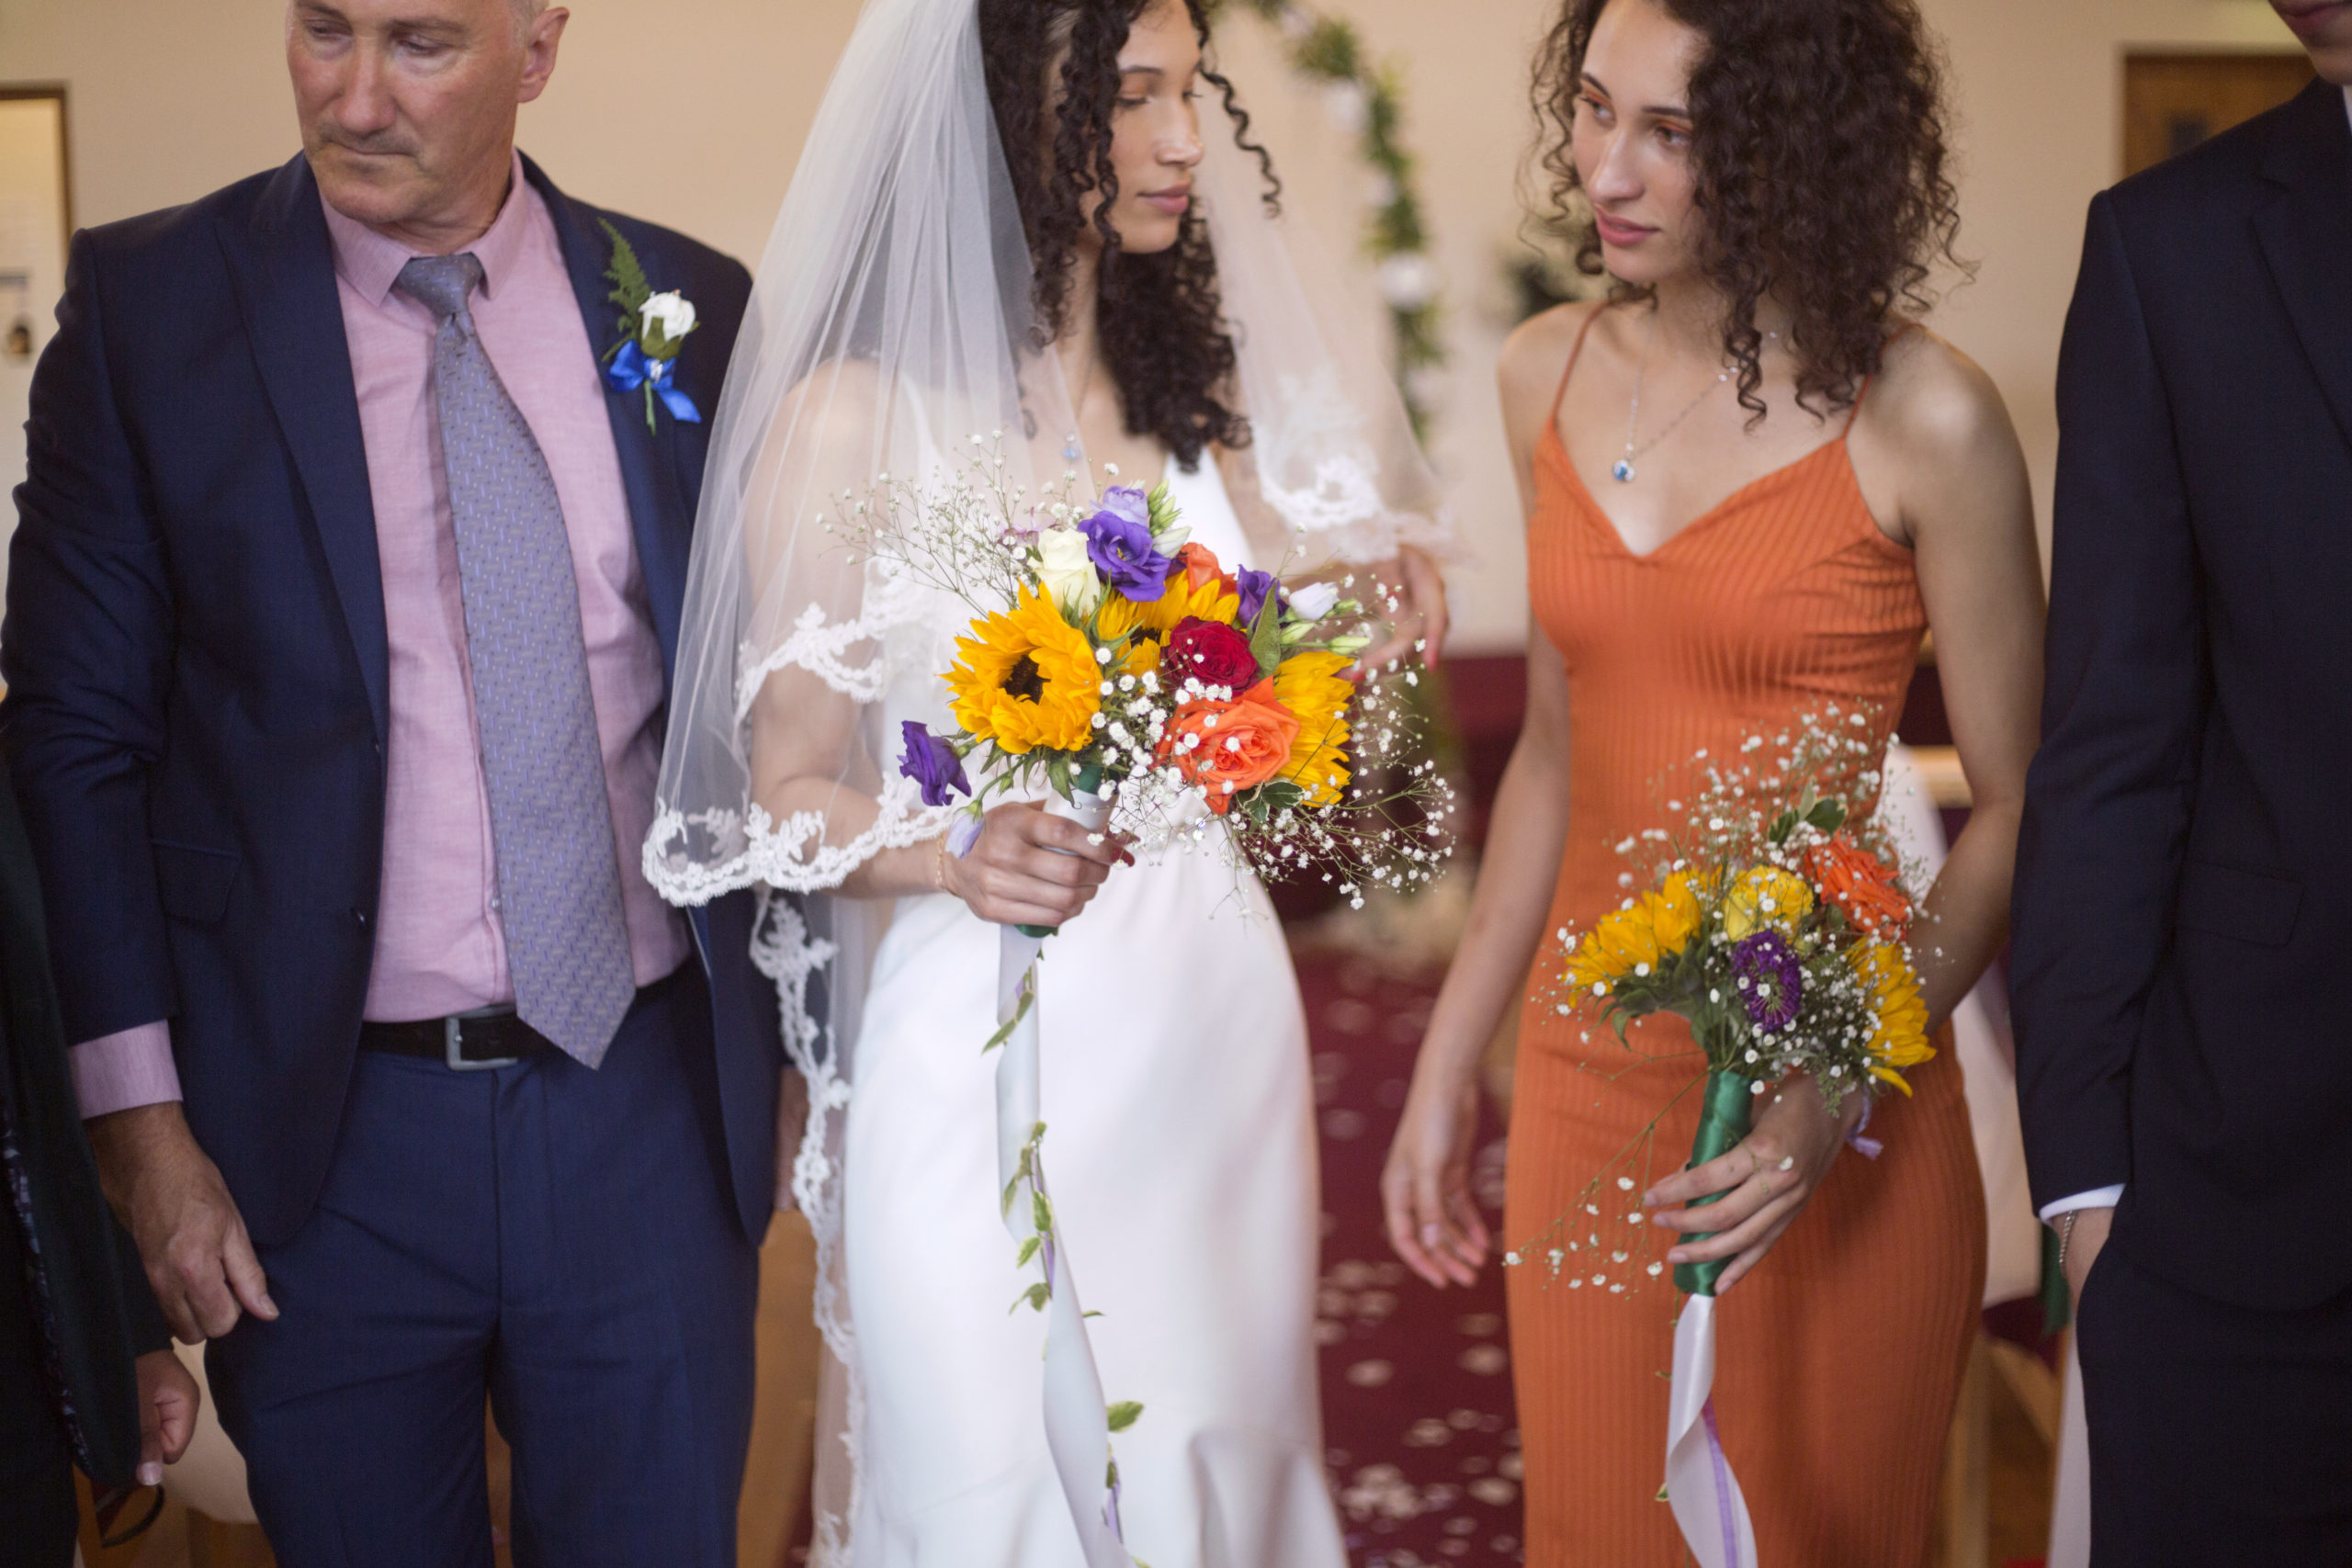 bride and her bridesmaid with homemade rustic bouquet micro wedding bristol photographer